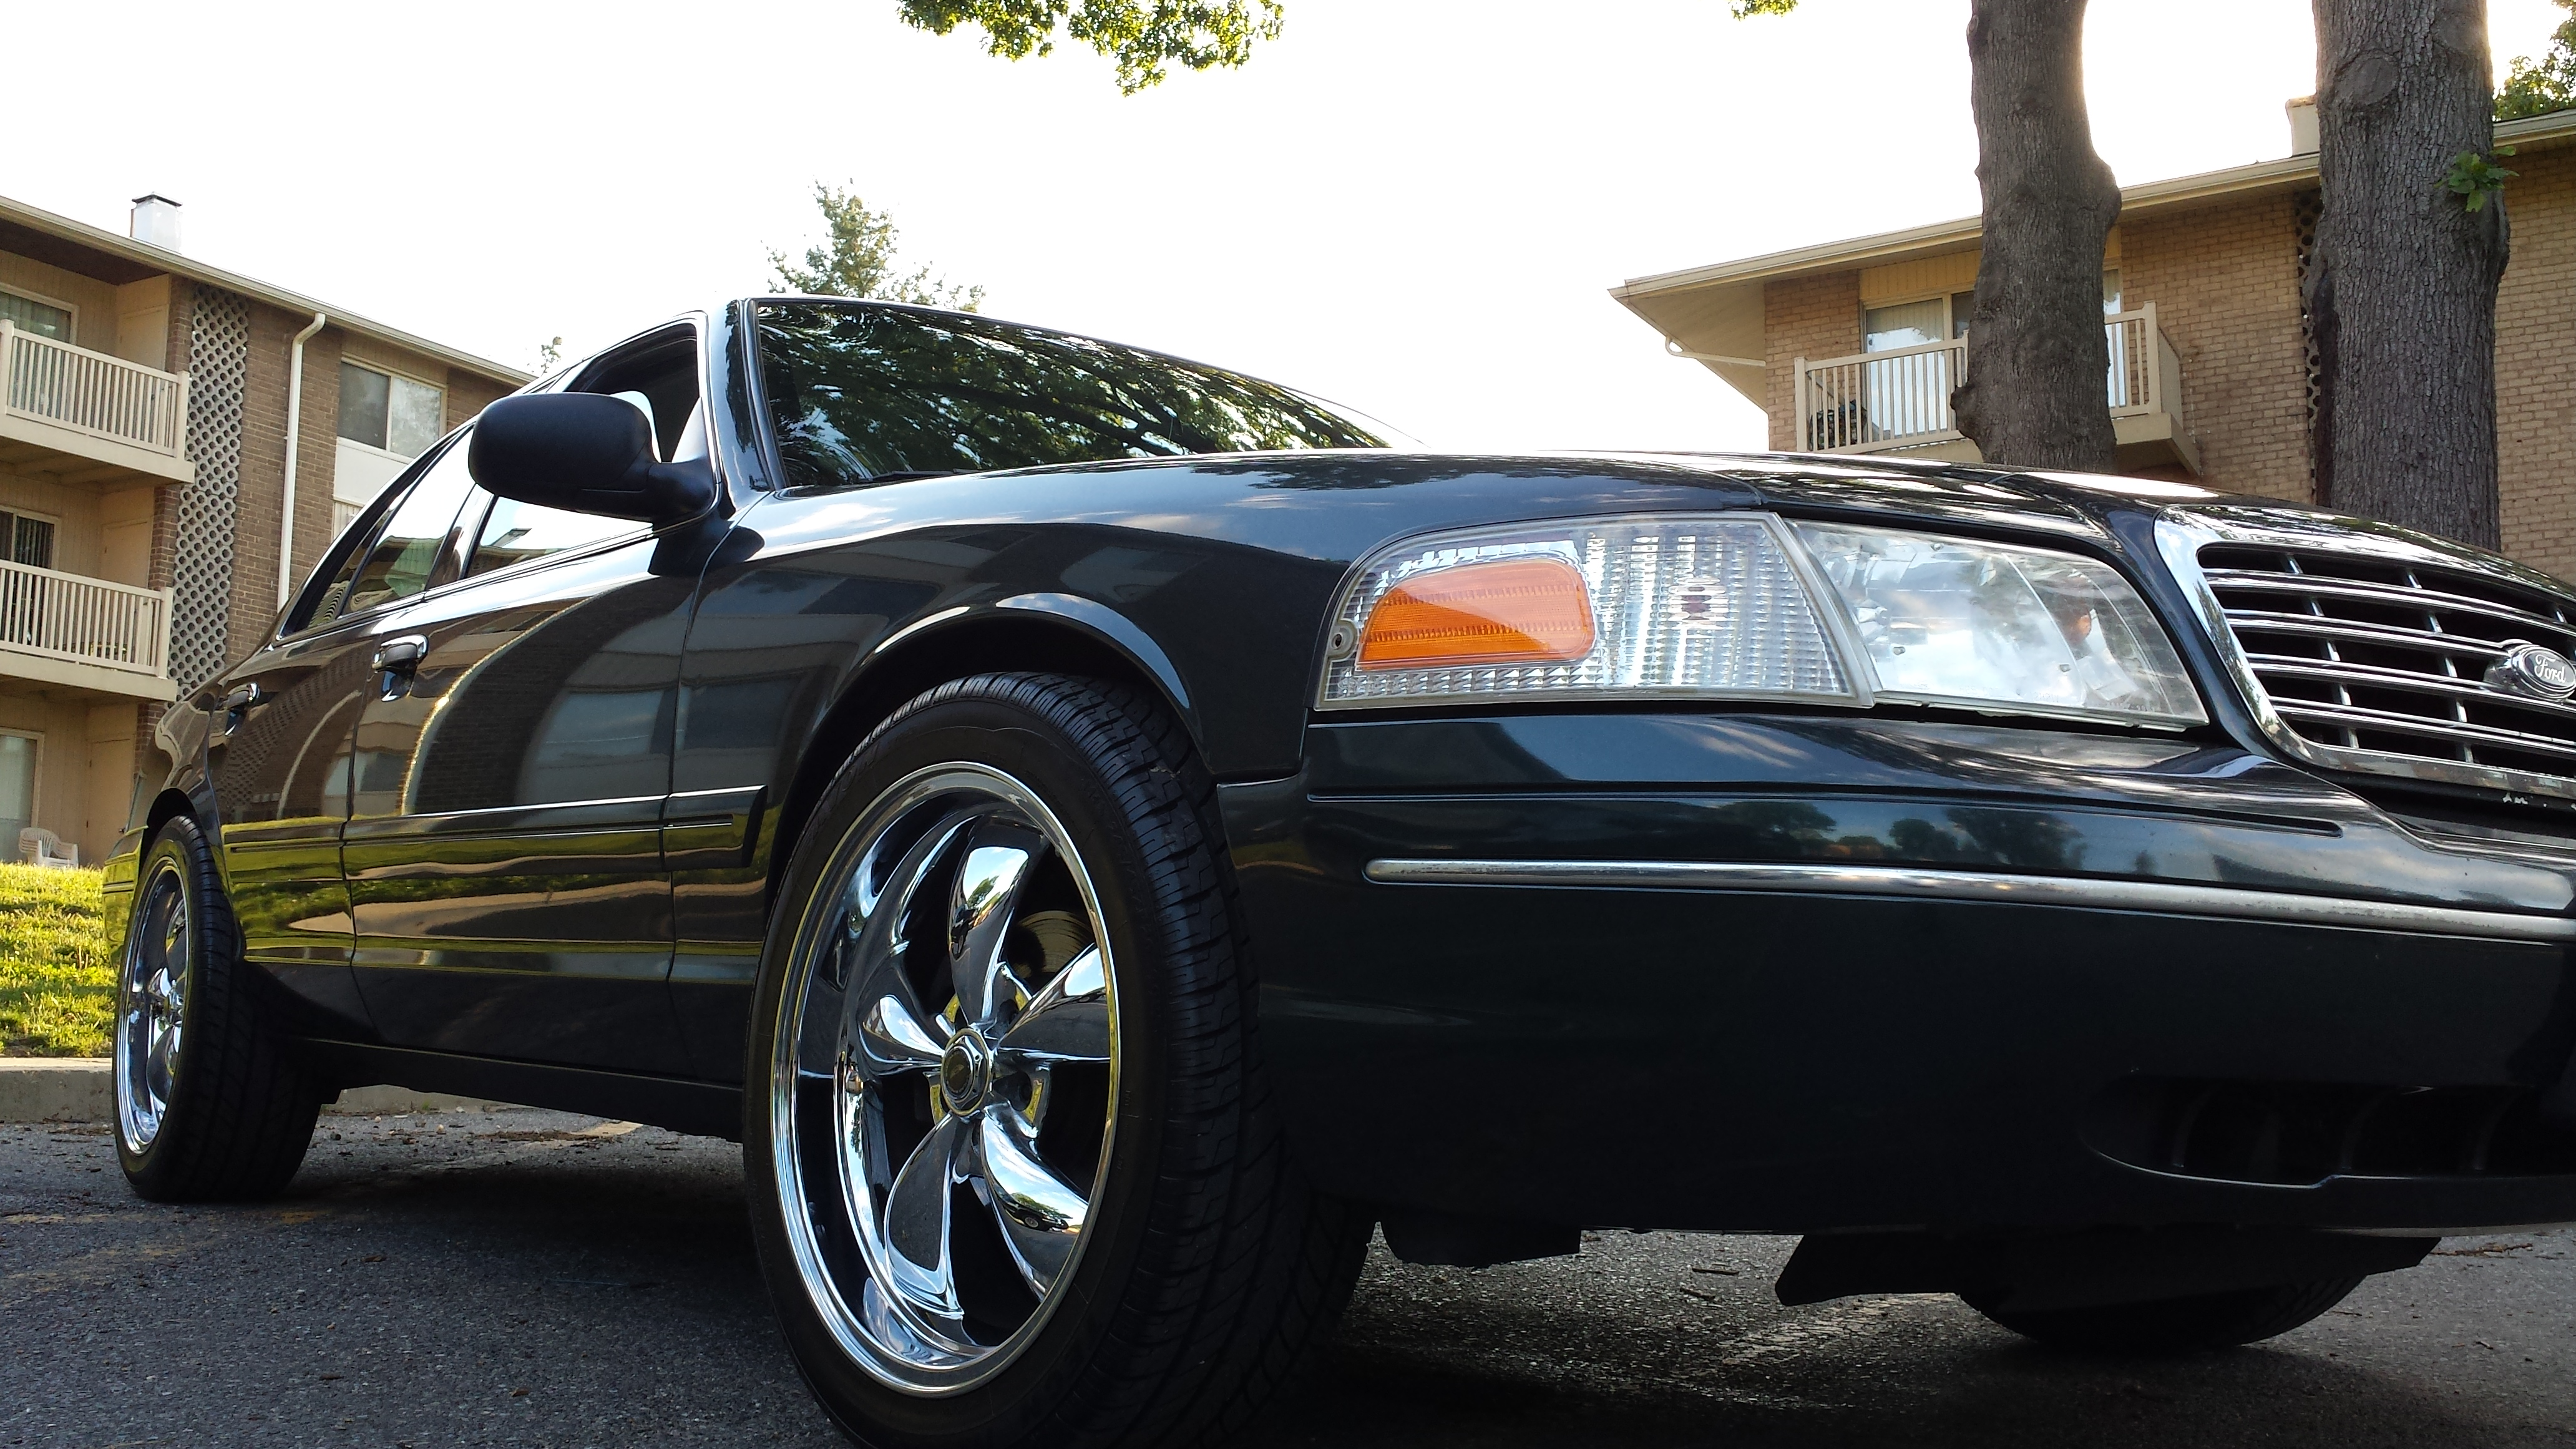 Ford Crown Victoria View all Ford Crown Victoria at CarDomain